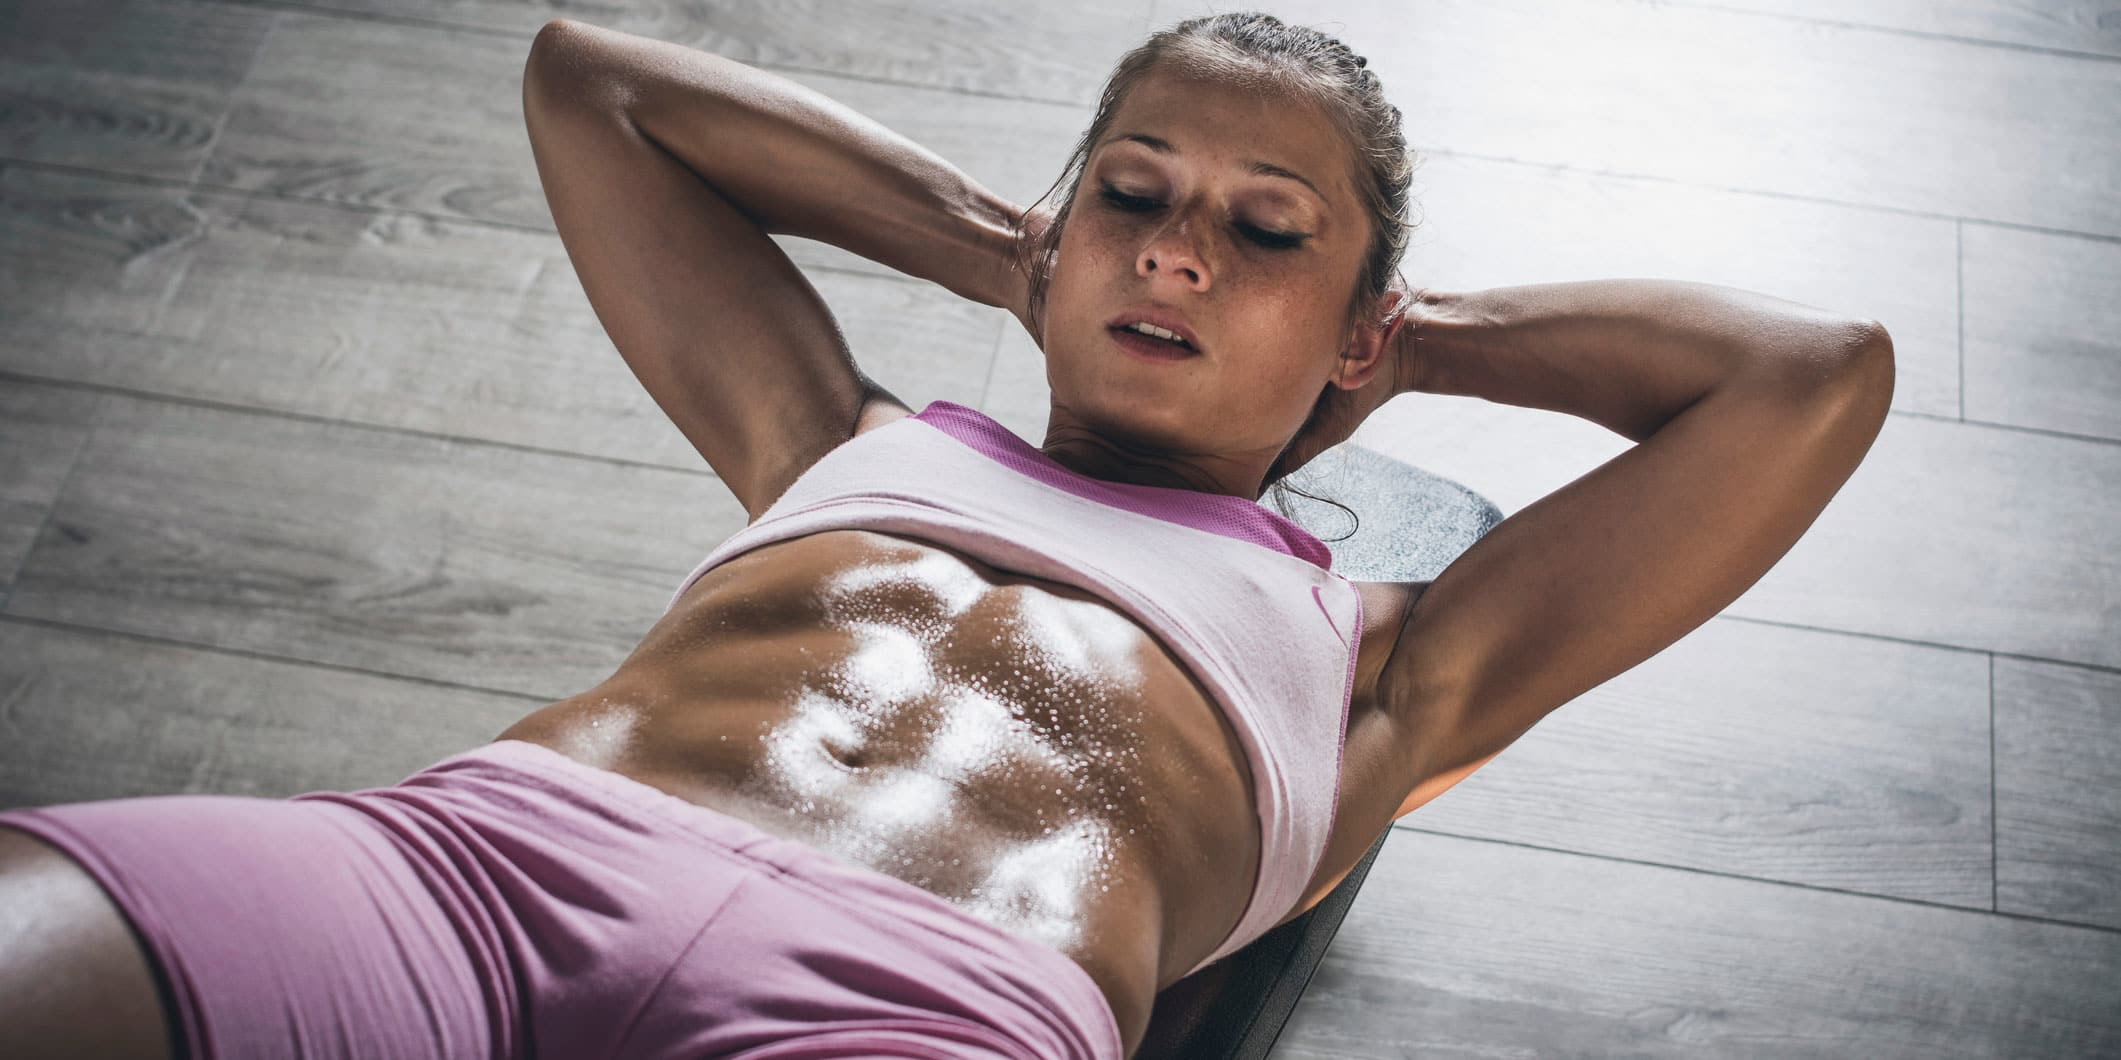 Some Tips To Get Those 6 Pack Abs